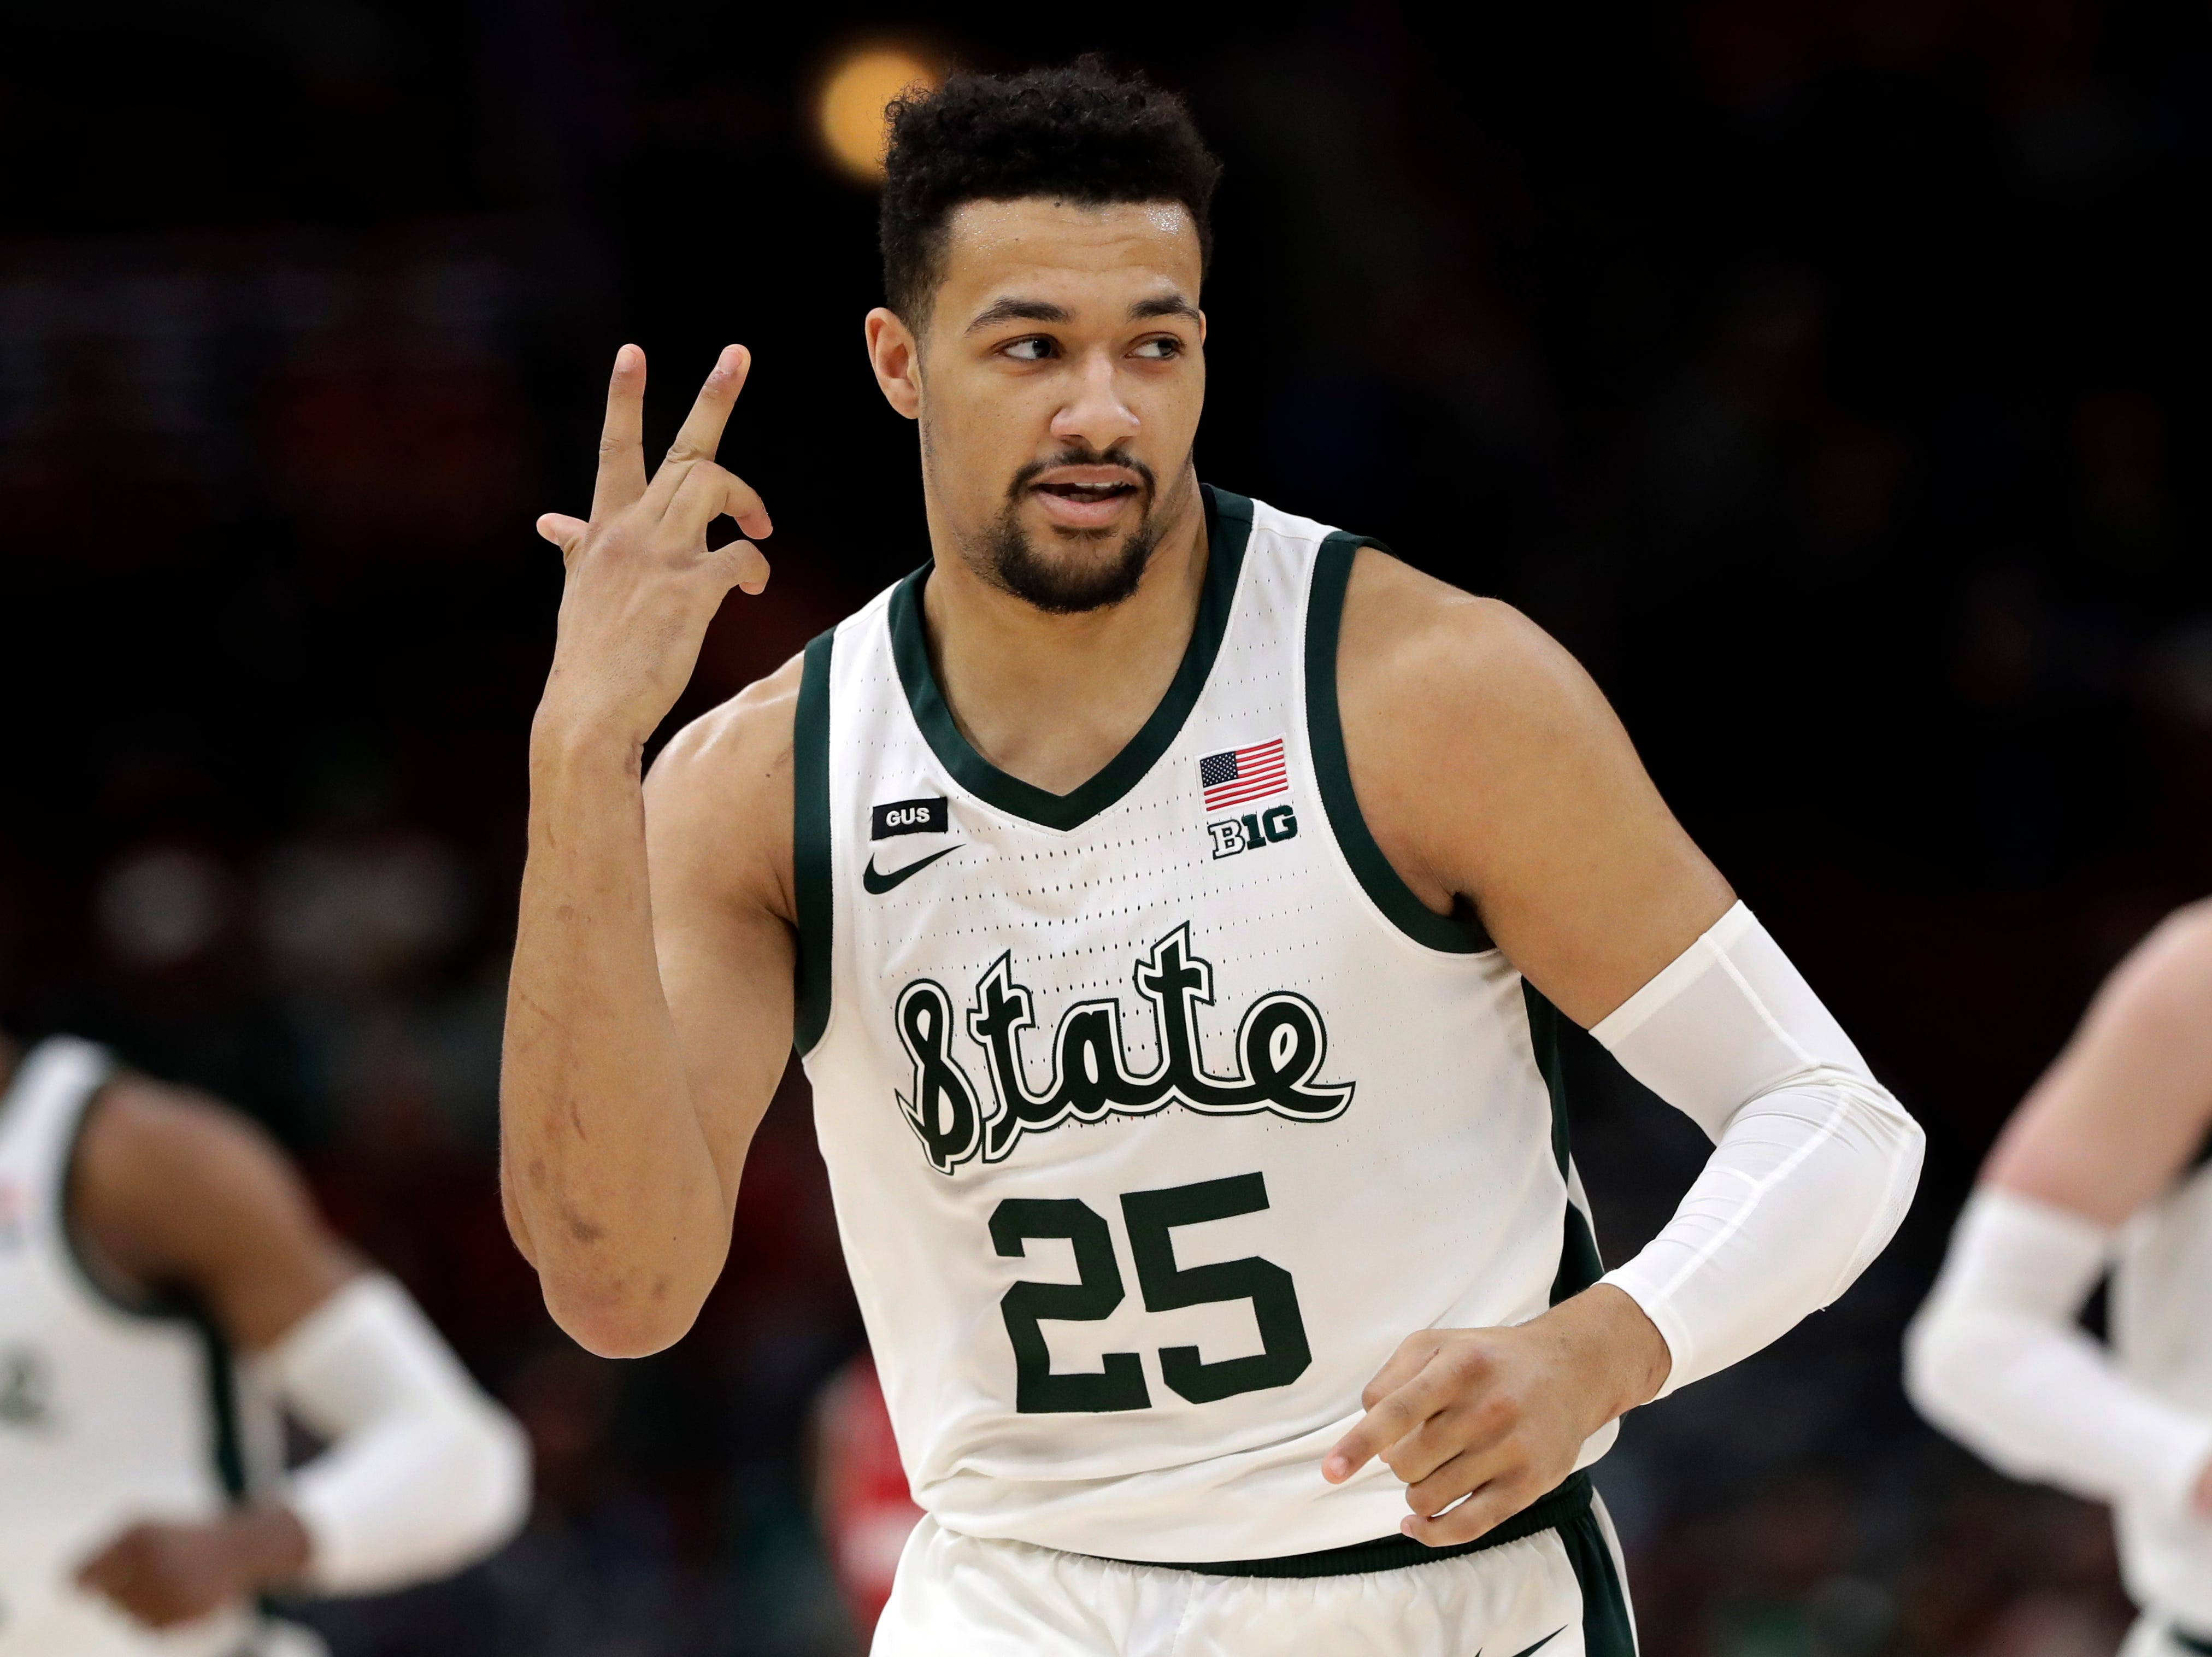 Michigan State's Kenny Goins (25) reacts after shooting a 3-point basket during the first half of an NCAA college basketball game against Wisconsin in the semifinals of the Big Ten Conference tournament, Saturday, March 16, 2019, in Chicago.